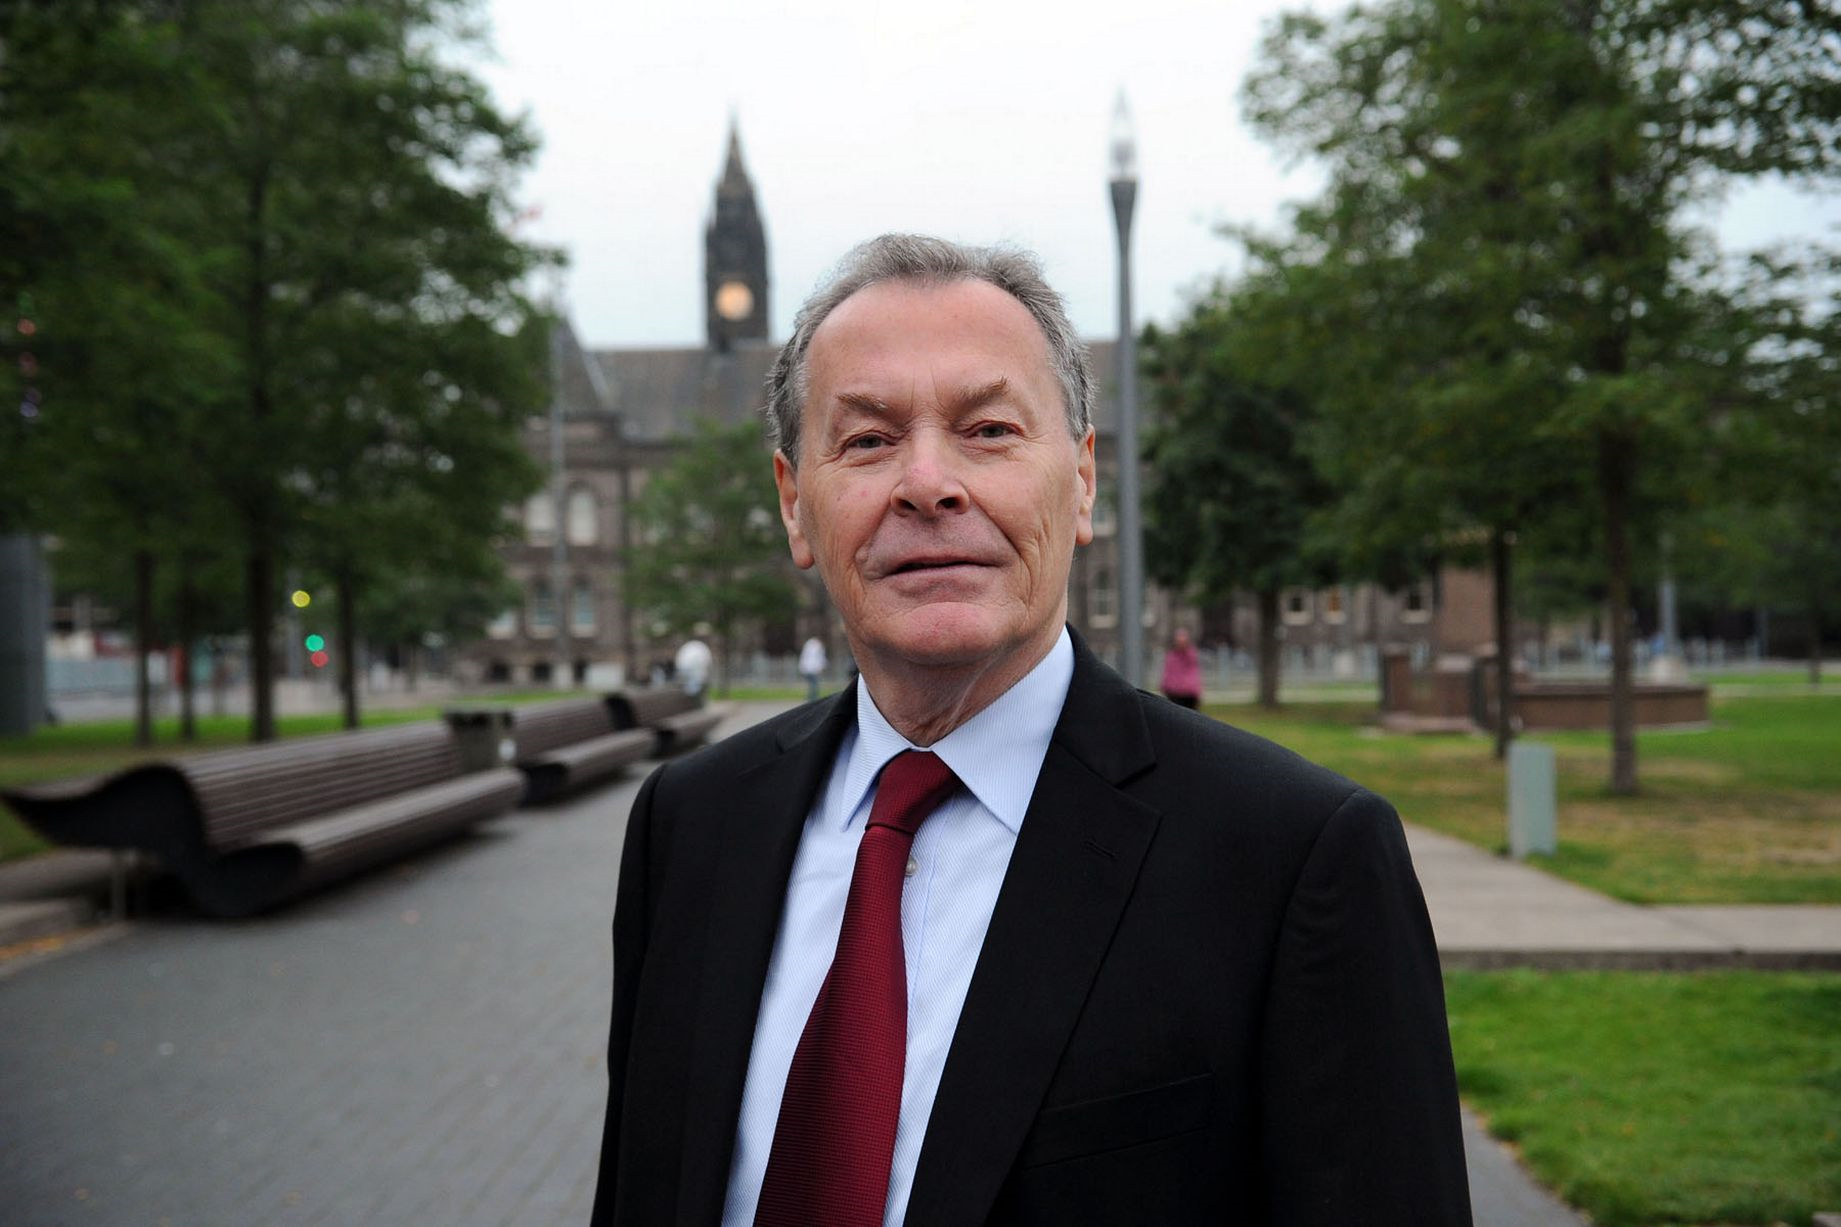 RE-ELECTION: Middlesbrough Mayor Dave Budd has confirmed he is not standing for re-election